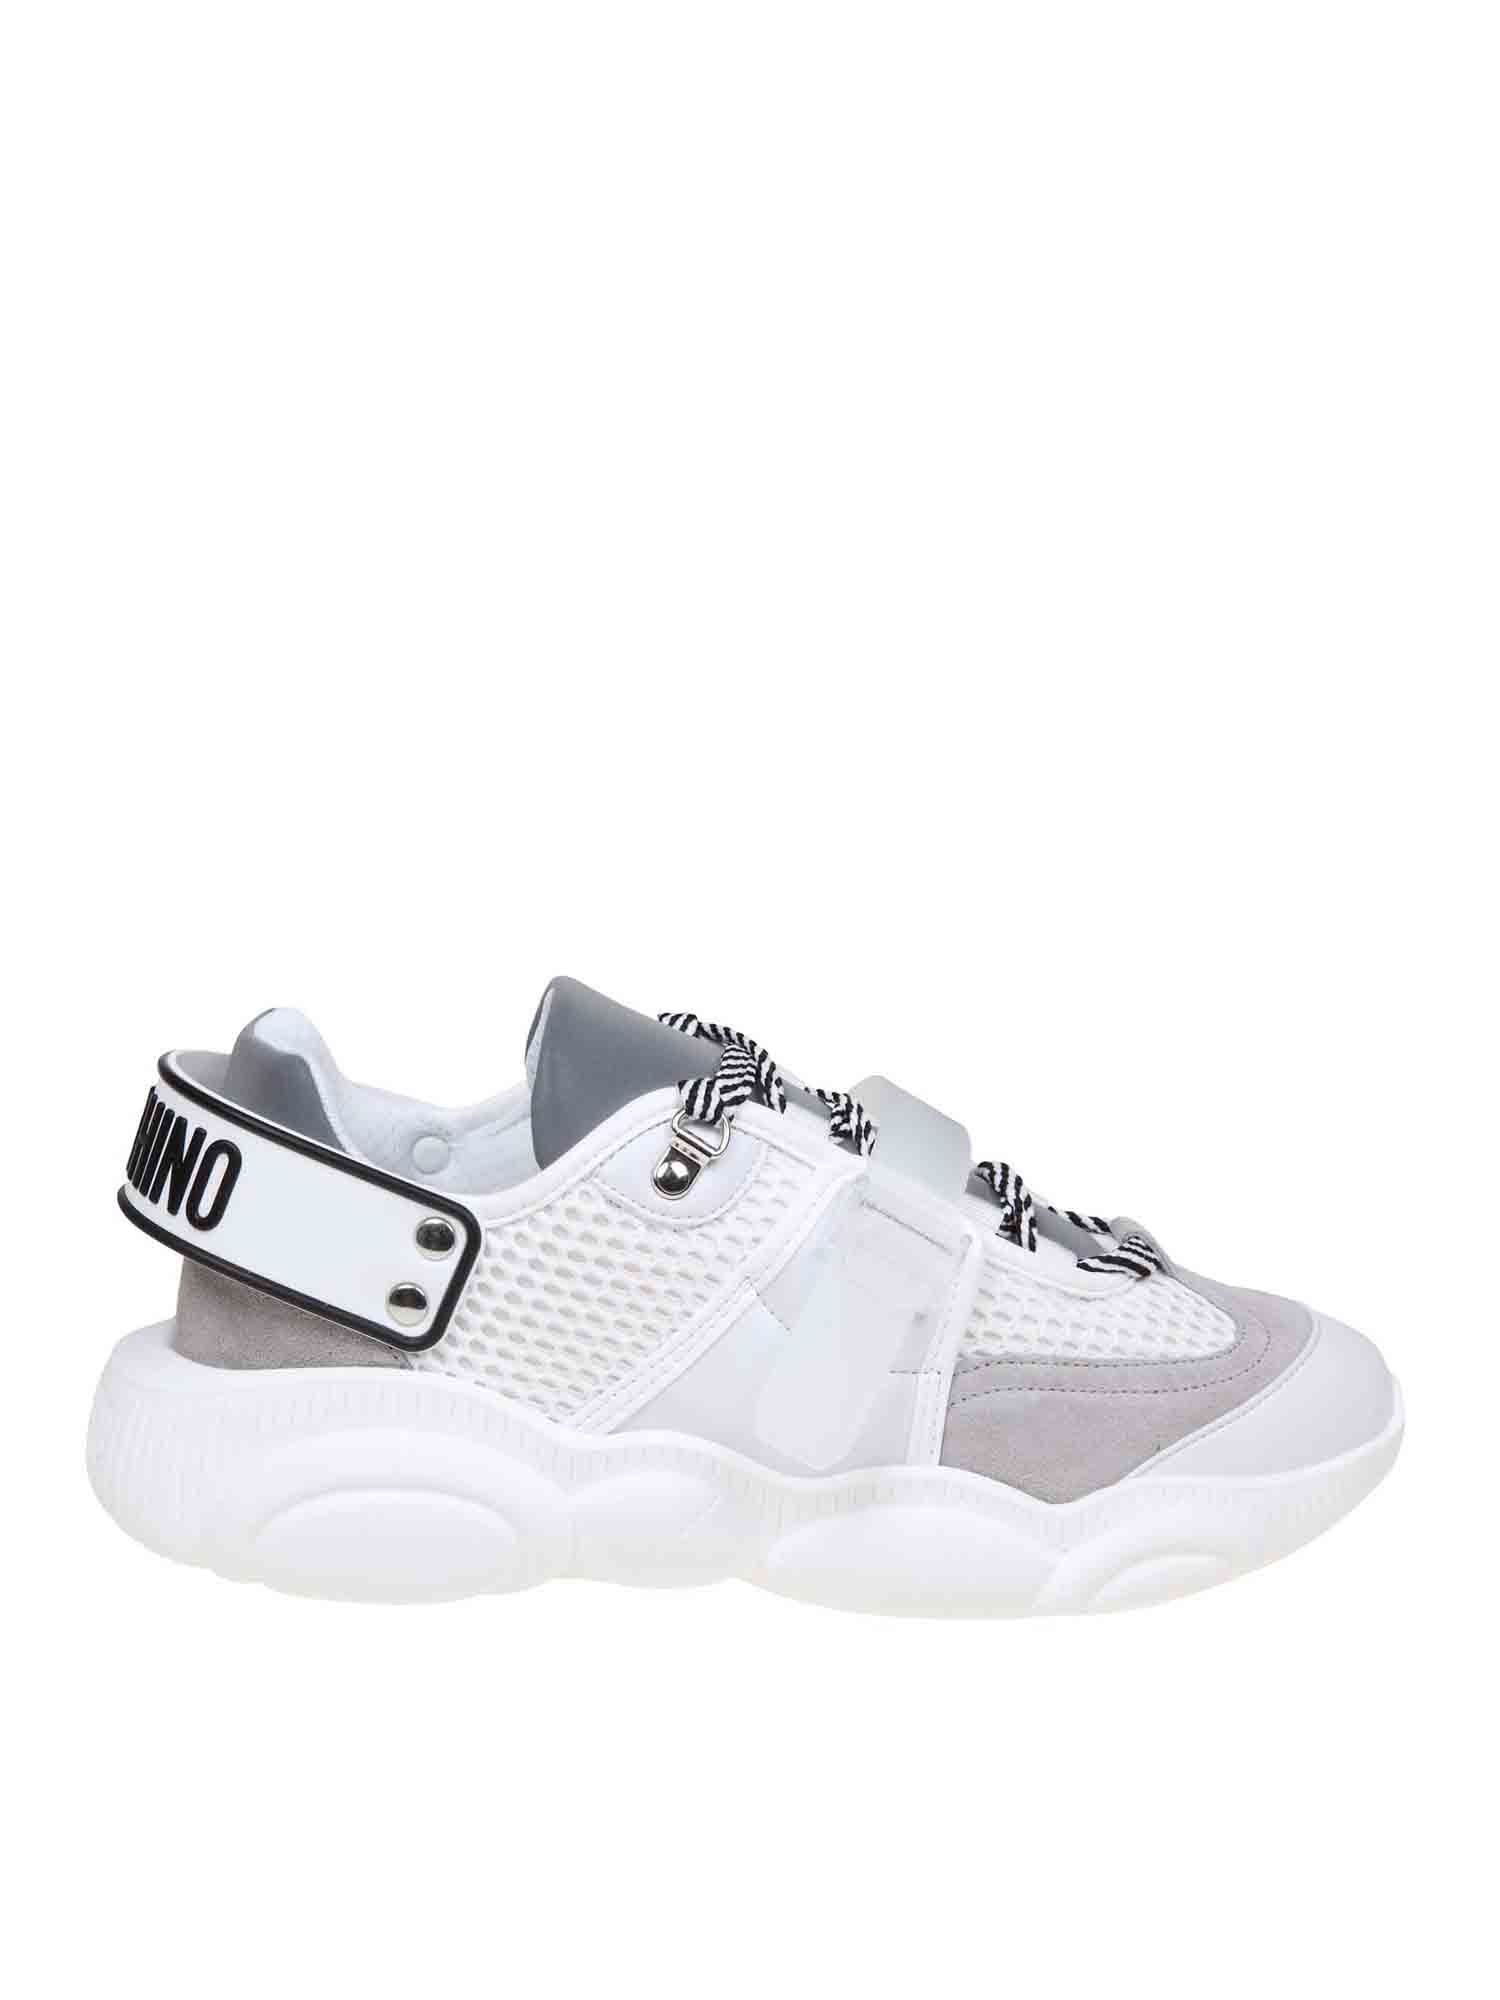 Moschino TEDDY SNEAKERS IN WHITE AND GRAY